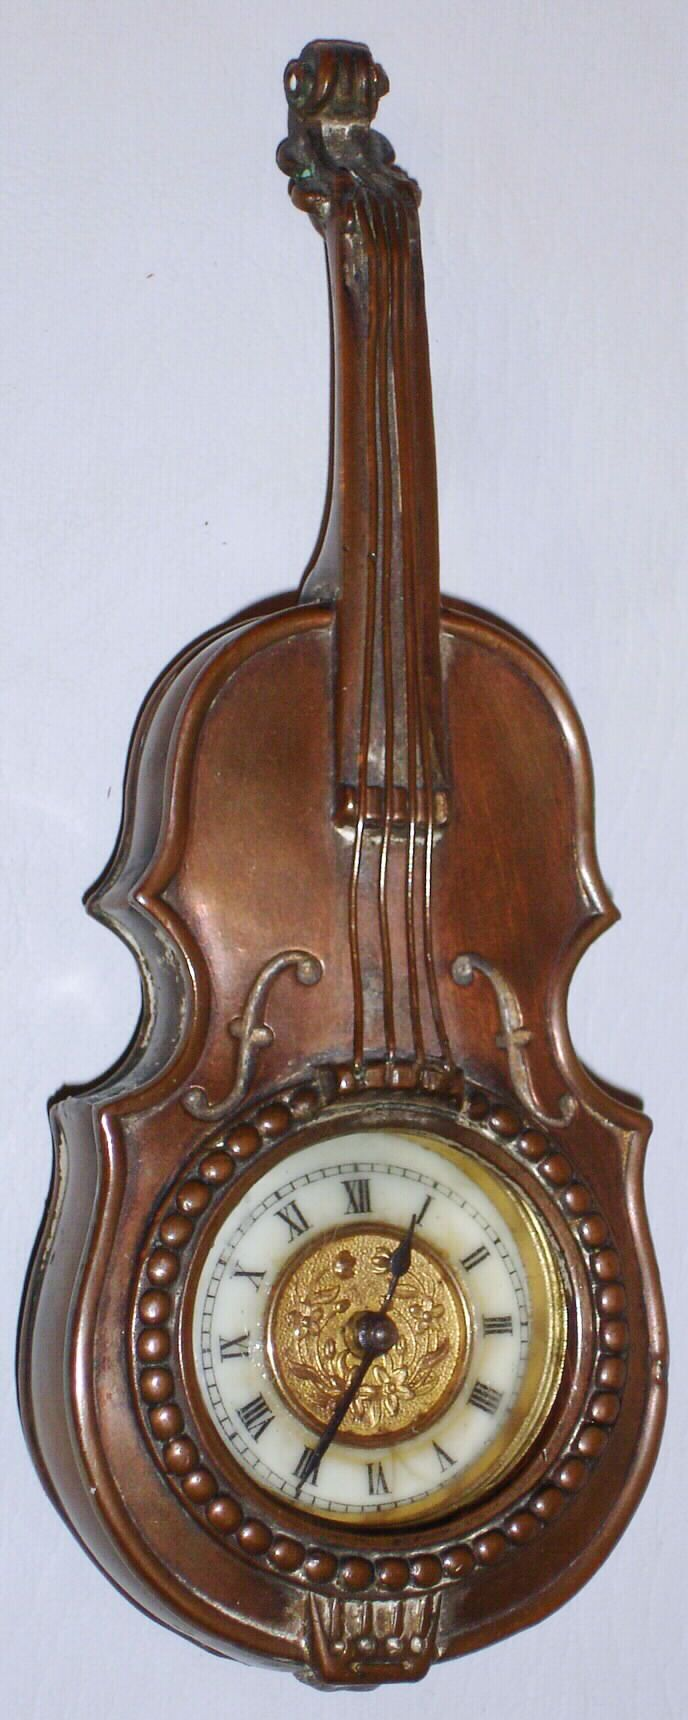 Old wood minerale interior of violin - Antique Clock In The Shape Of A Violin I Love Musical Instrument Clocks